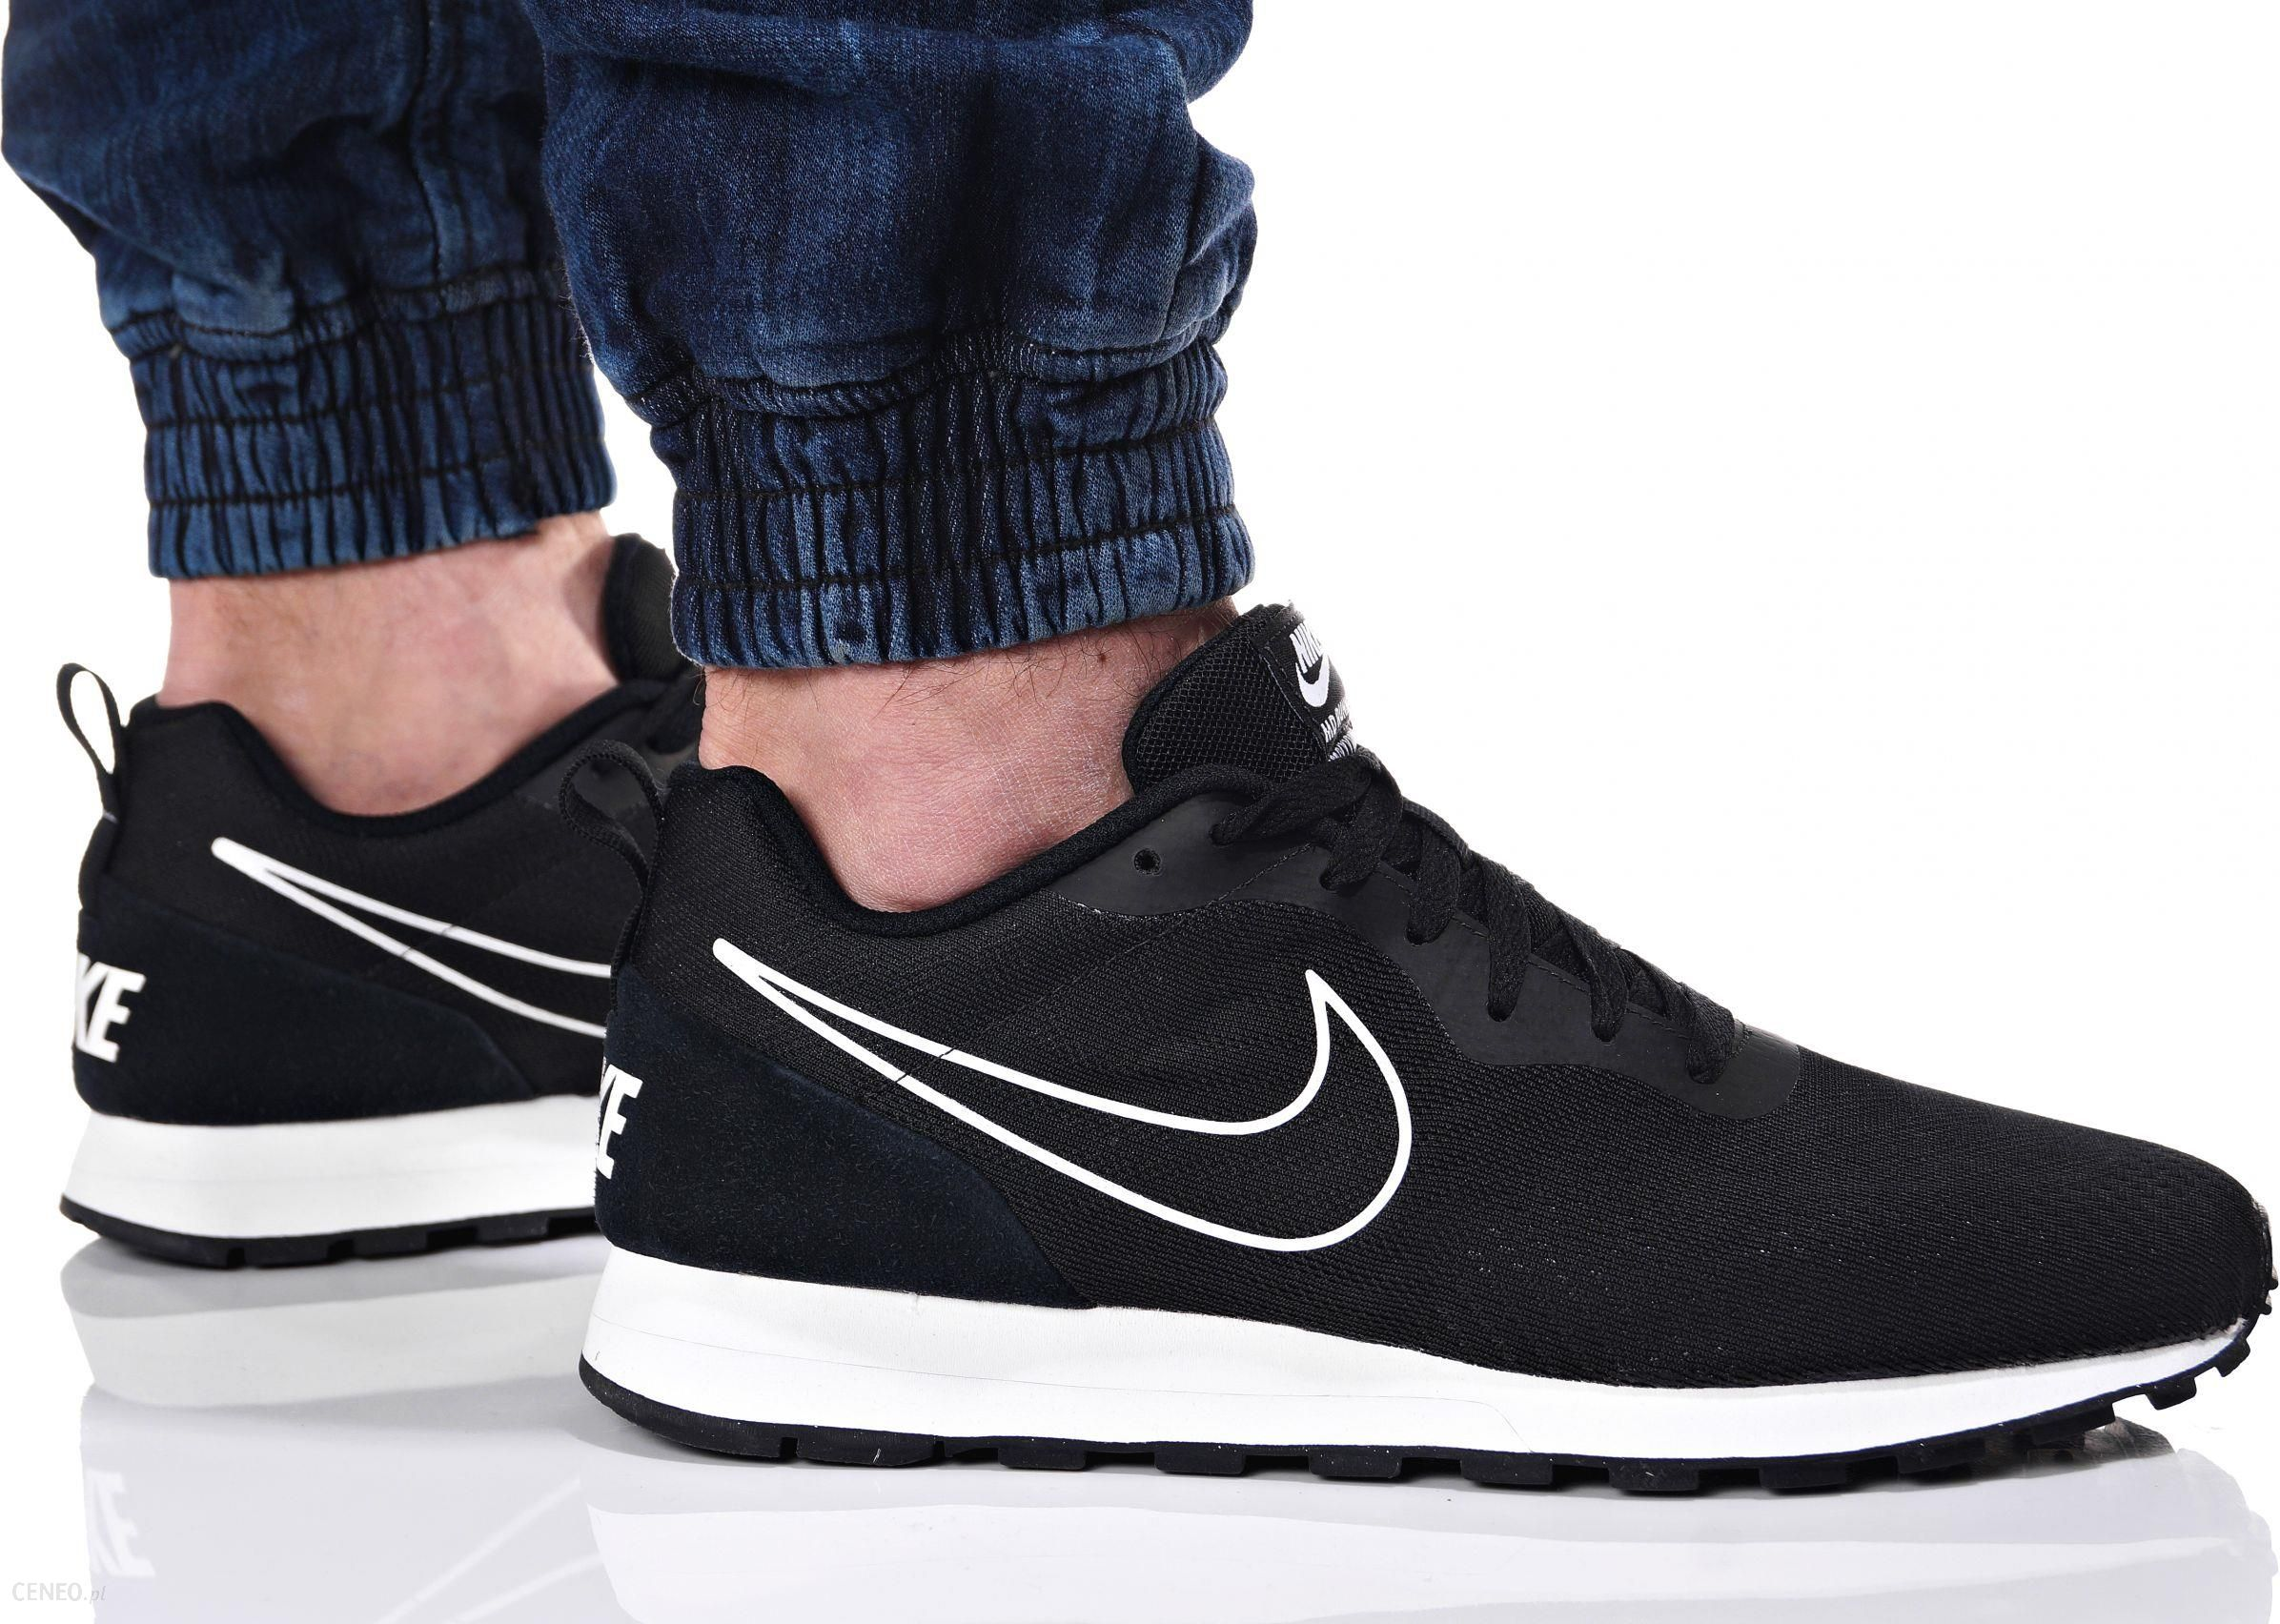 a2d8b9895 BUTY NIKE MD RUNNER 2 ENG MESH 902815-002 - Ceny i opinie - Ceneo.pl